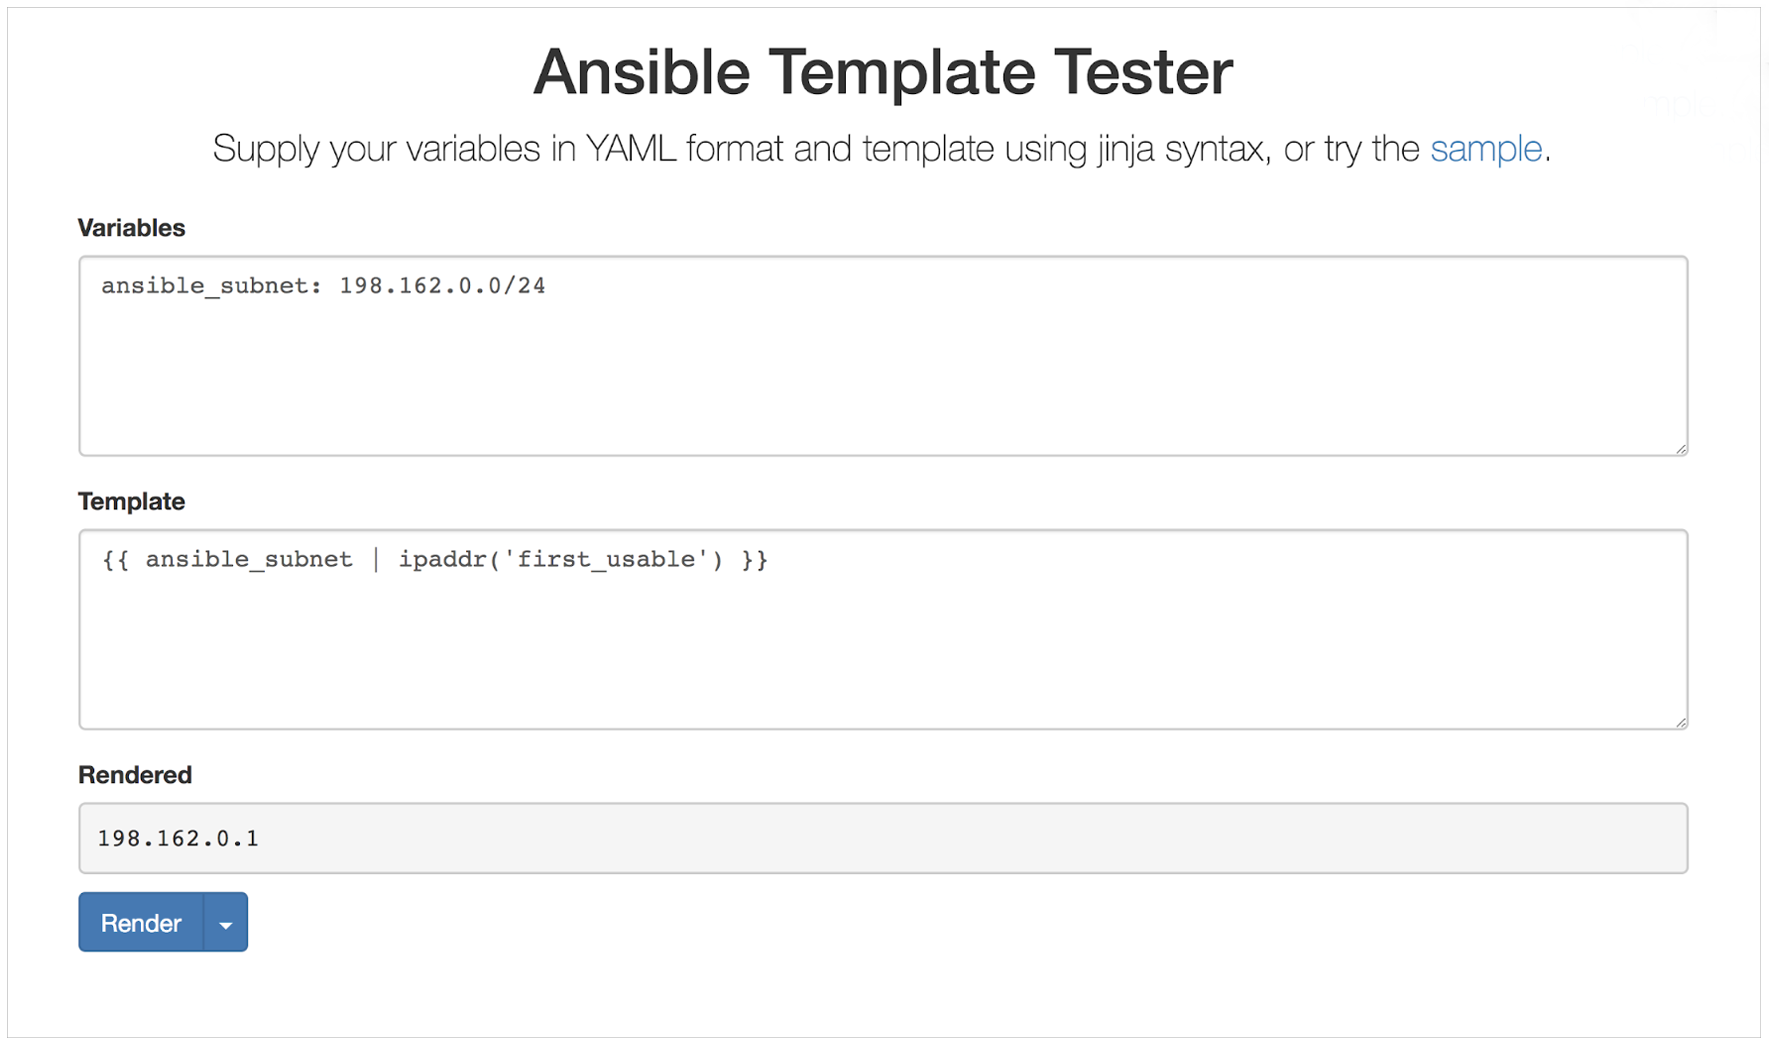 Ansible Template Tester